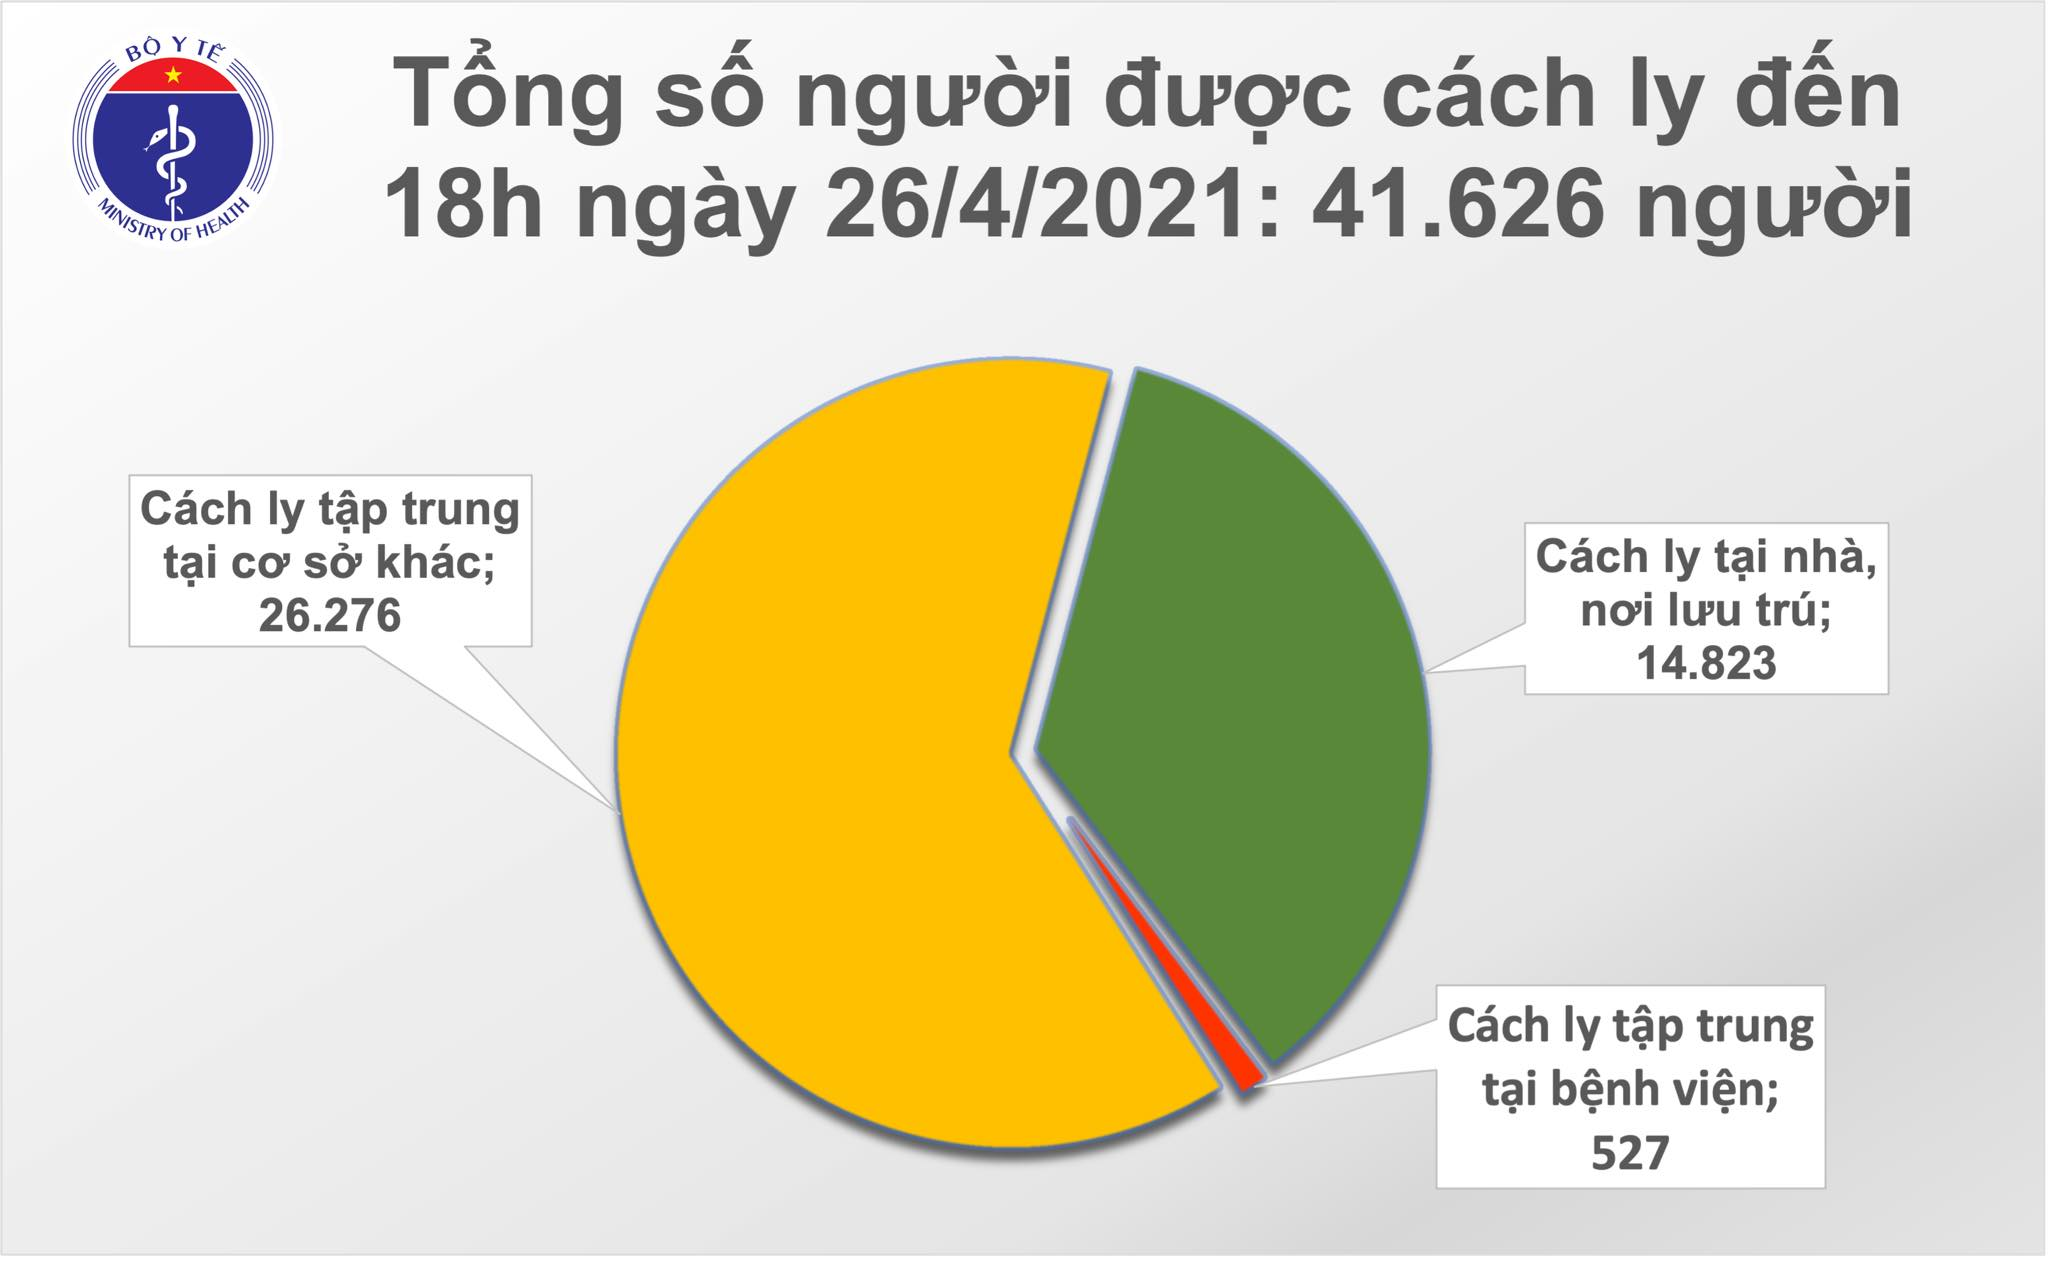 On the afternoon of April 26, there were 6 cases of Covid-19 in Ho Chi Minh City, Ba Ria-Vung Tau and Hanoi - Photo 2.